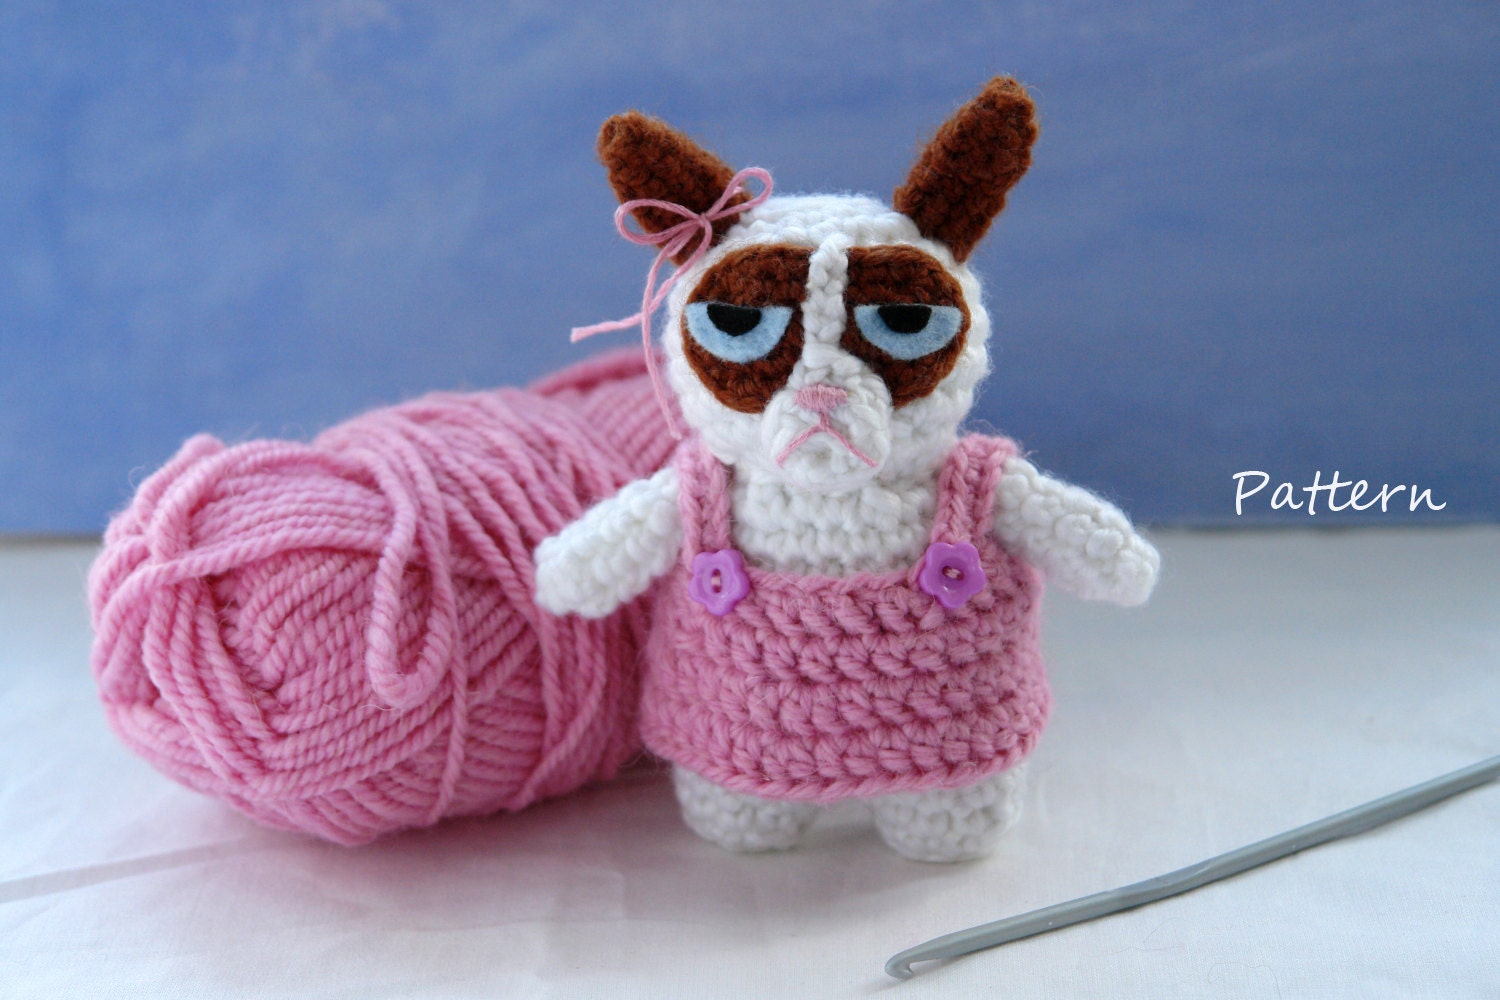 Grumpy Cat Amigurumi Pattern Free : CROCHET PATTERN for Grumpy Cat / amigurumi pattern by ...